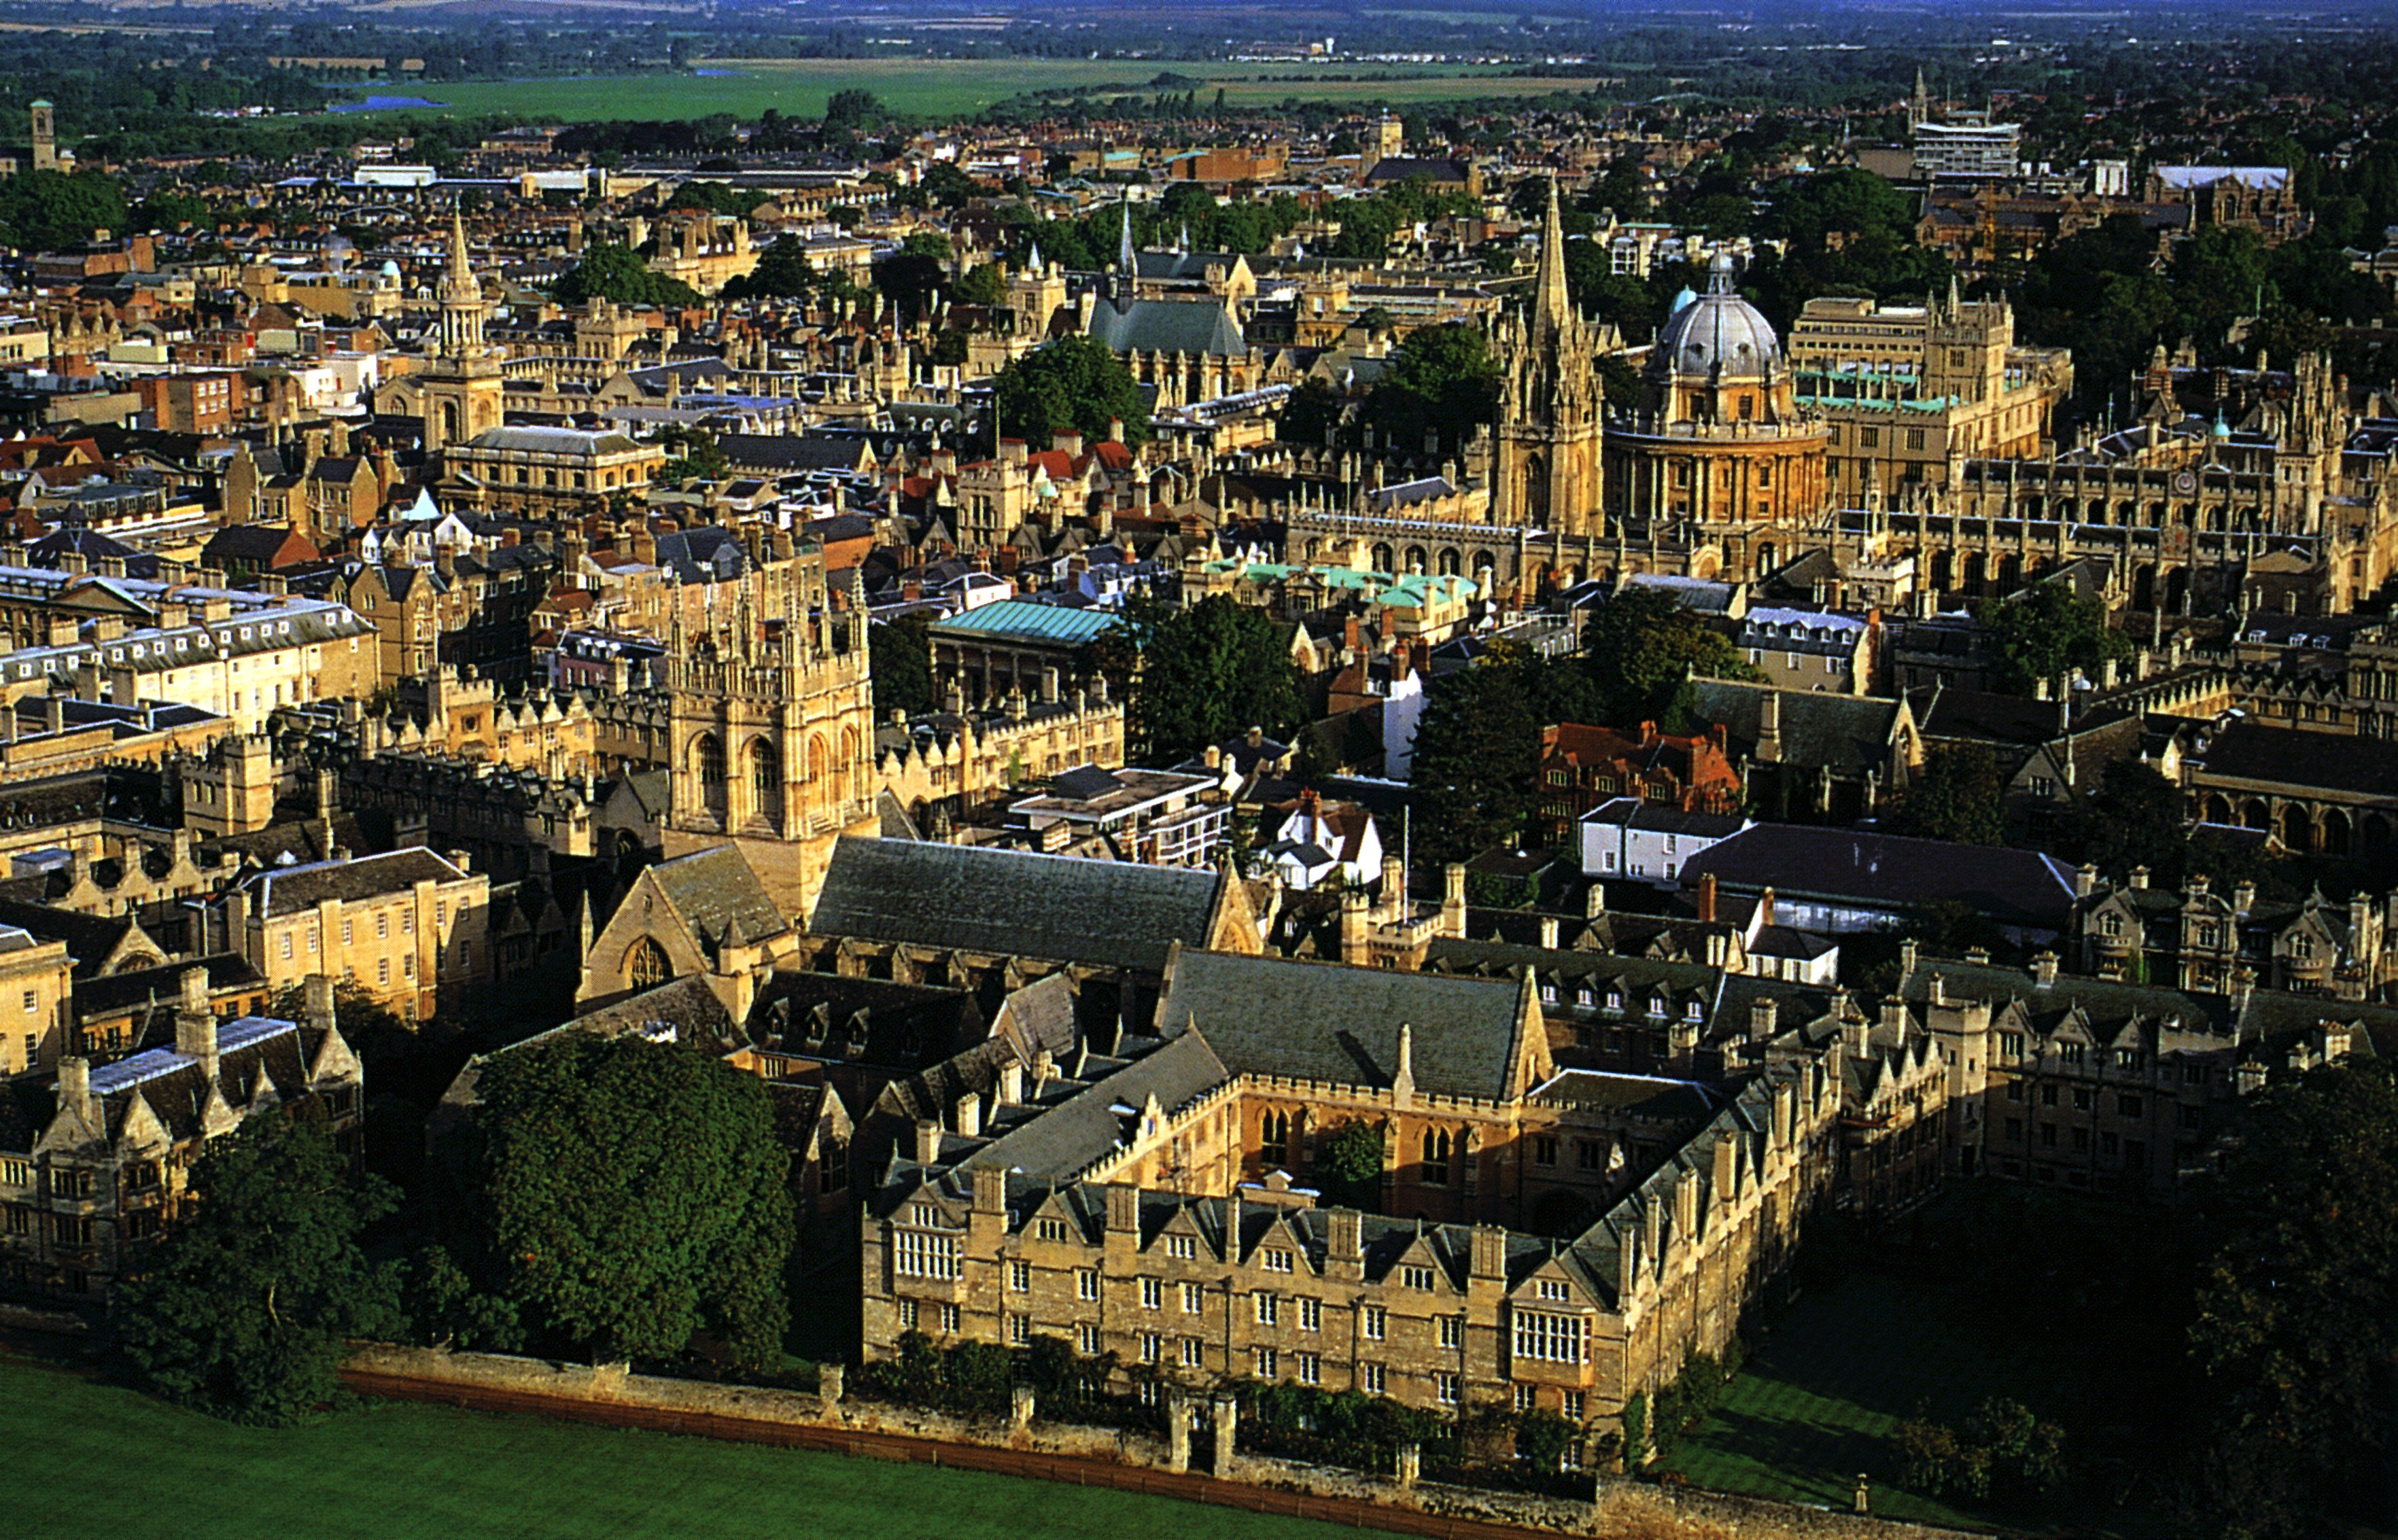 Oxford Town In England Thousand Wonders Oxoford